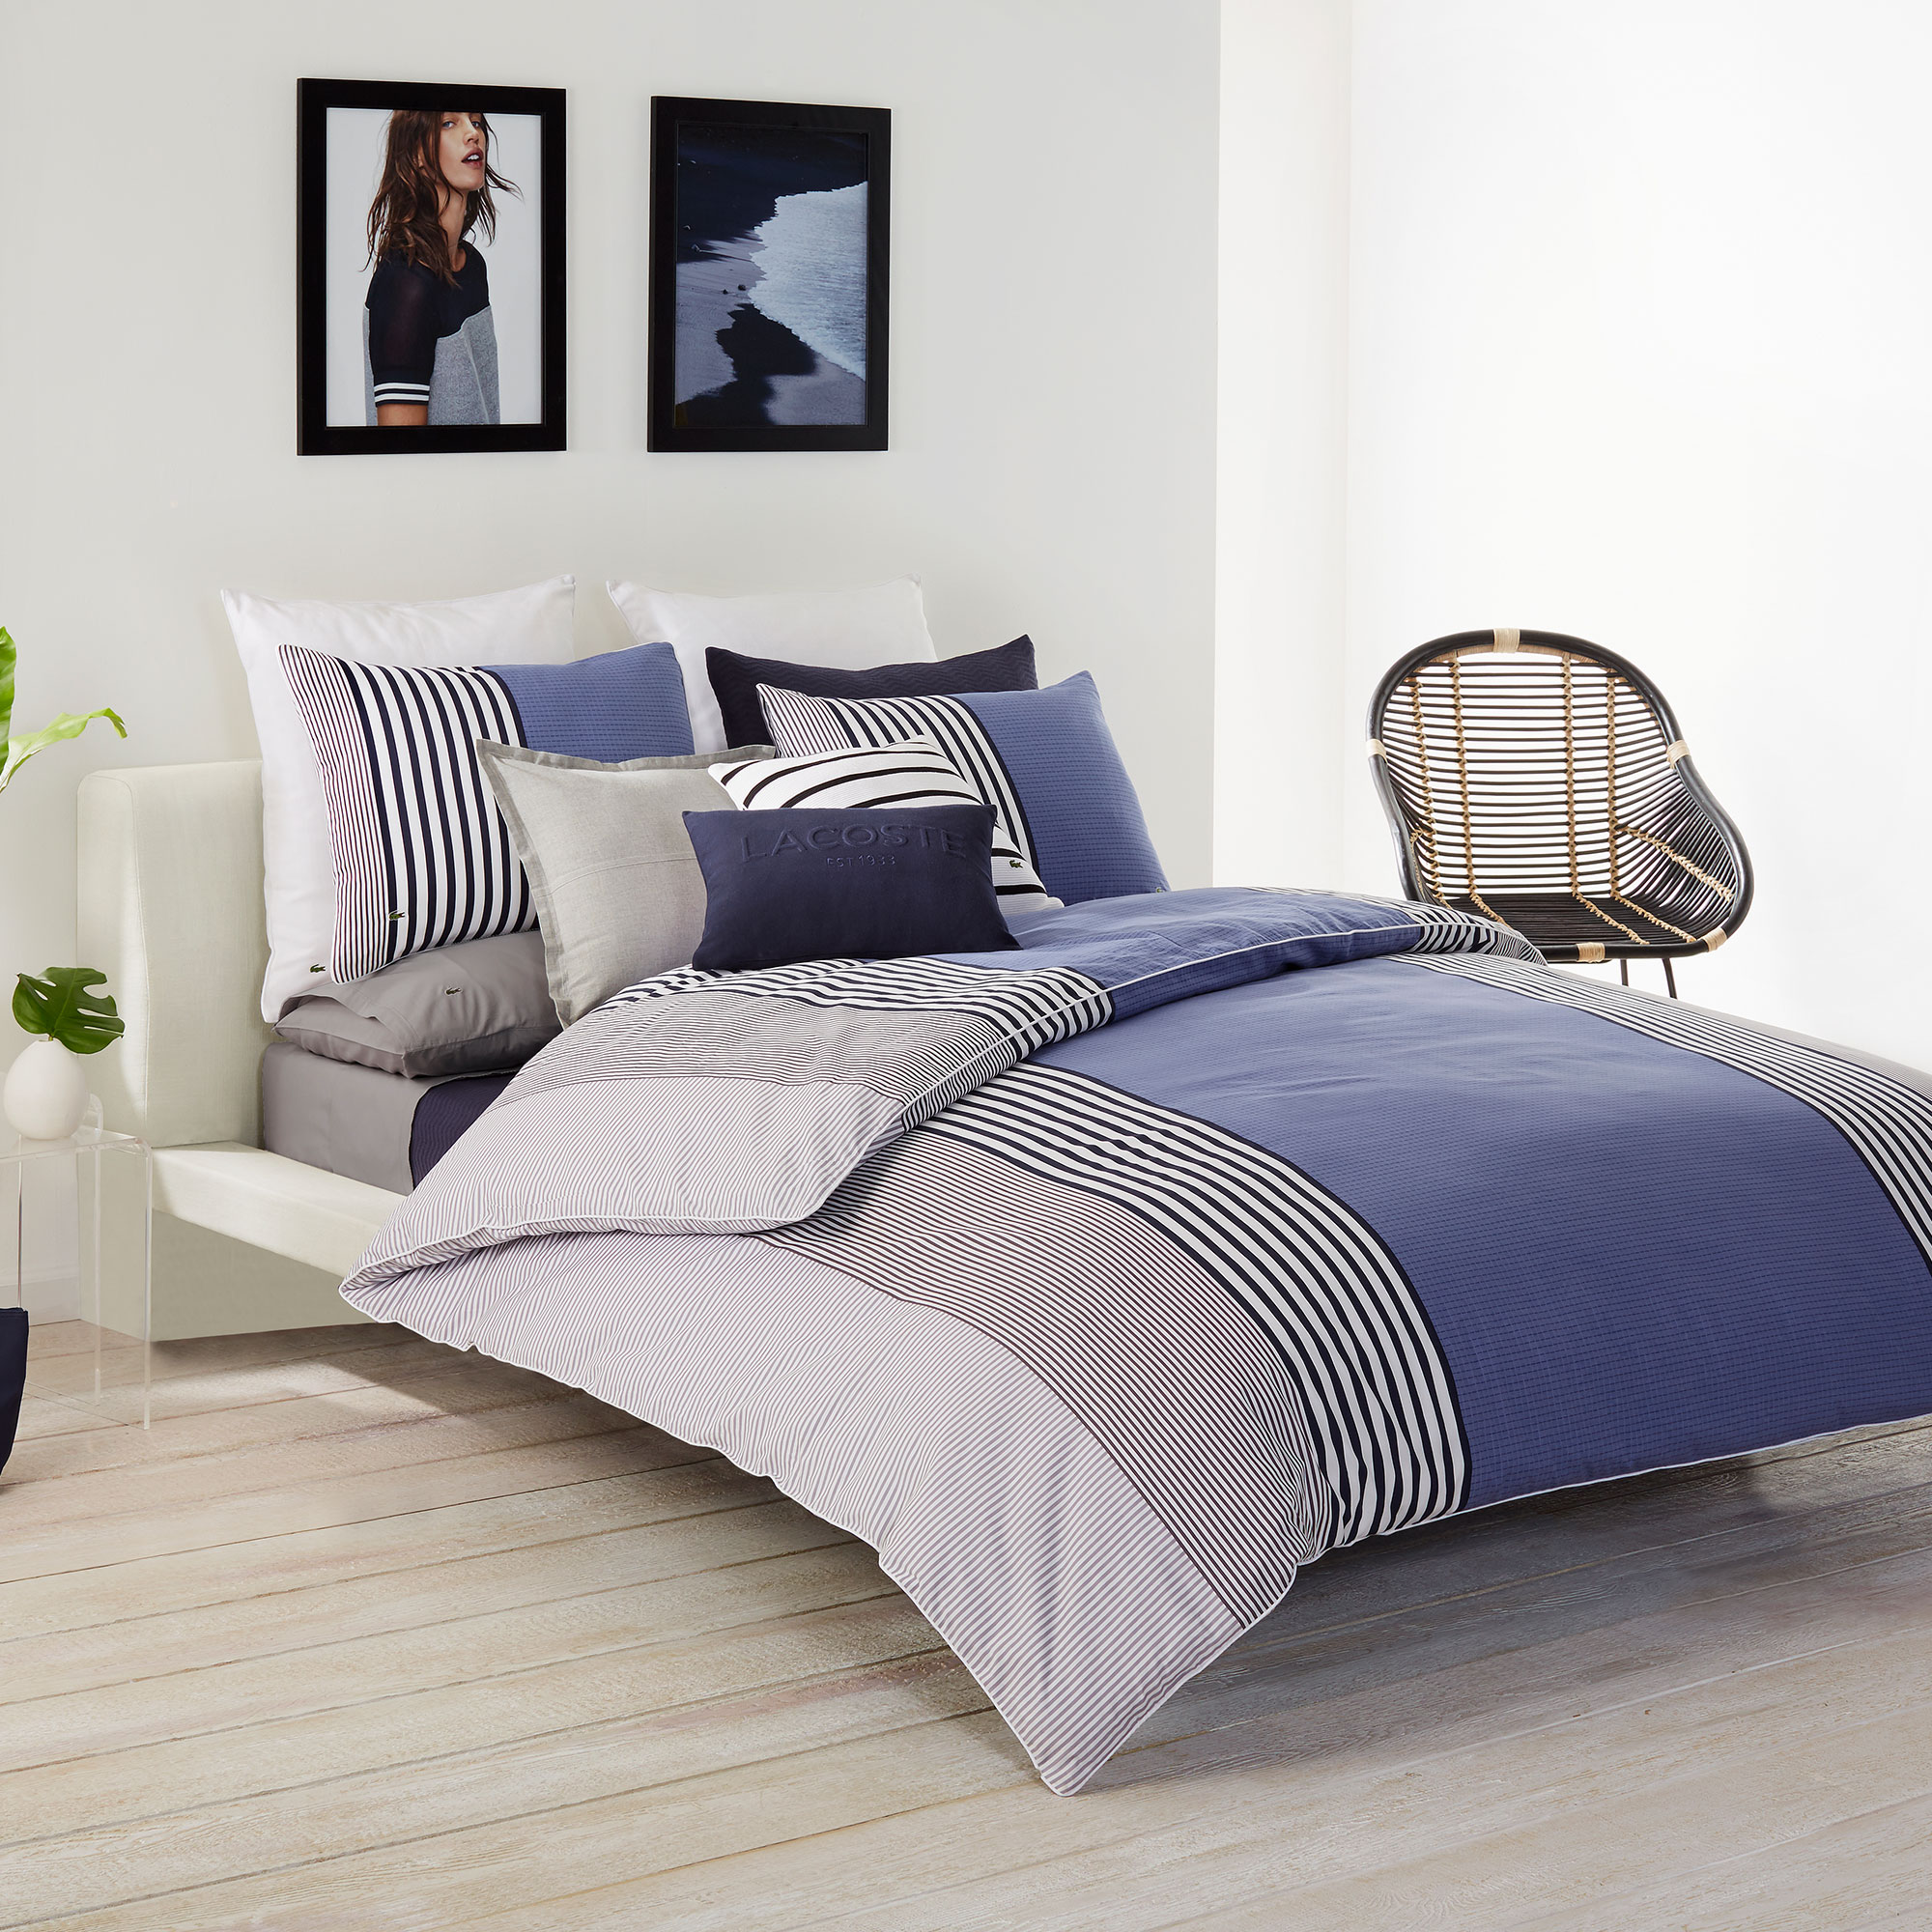 news new launches cover duvet gallery lacoste brand collection college bedding